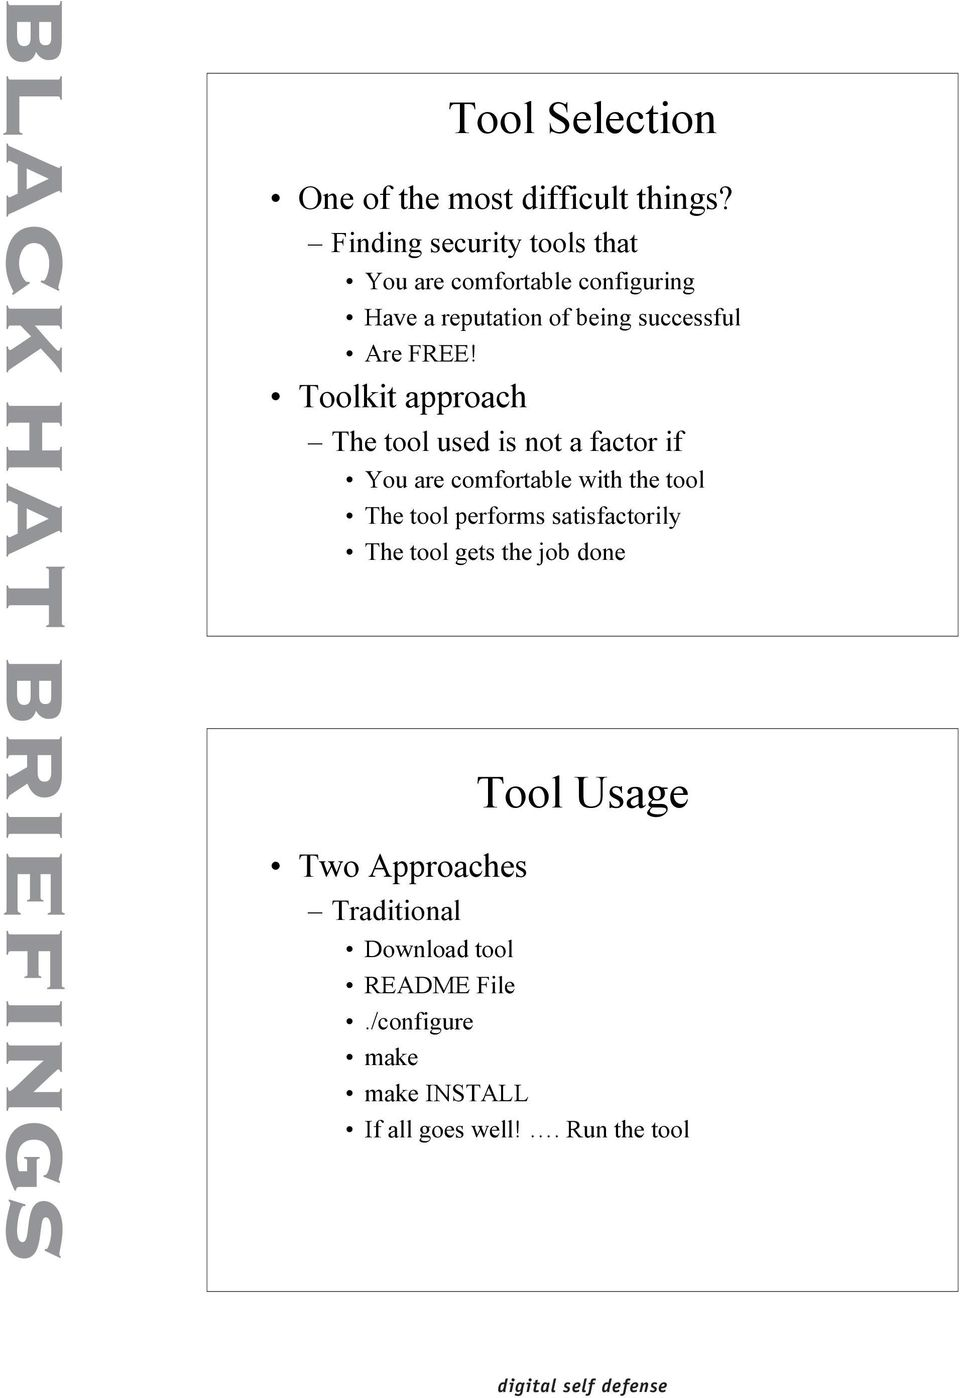 Toolkit approach The tool used is not a factor if You are comfortable with the tool The tool performs